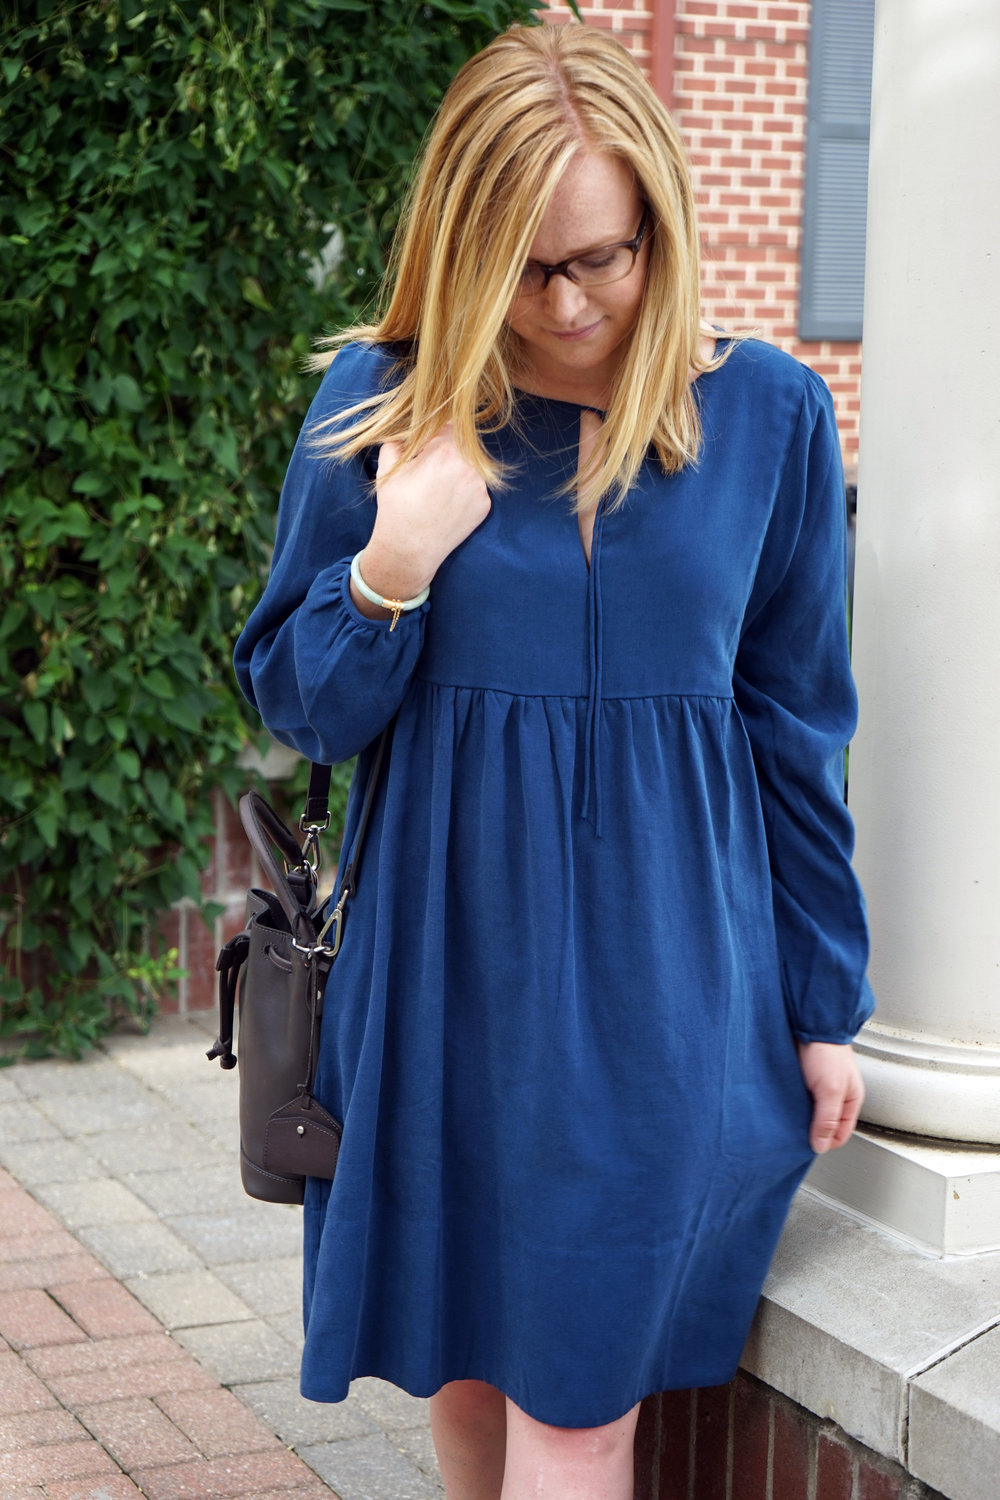 Club Monaco Ilona Dress - Maggie a la Mode